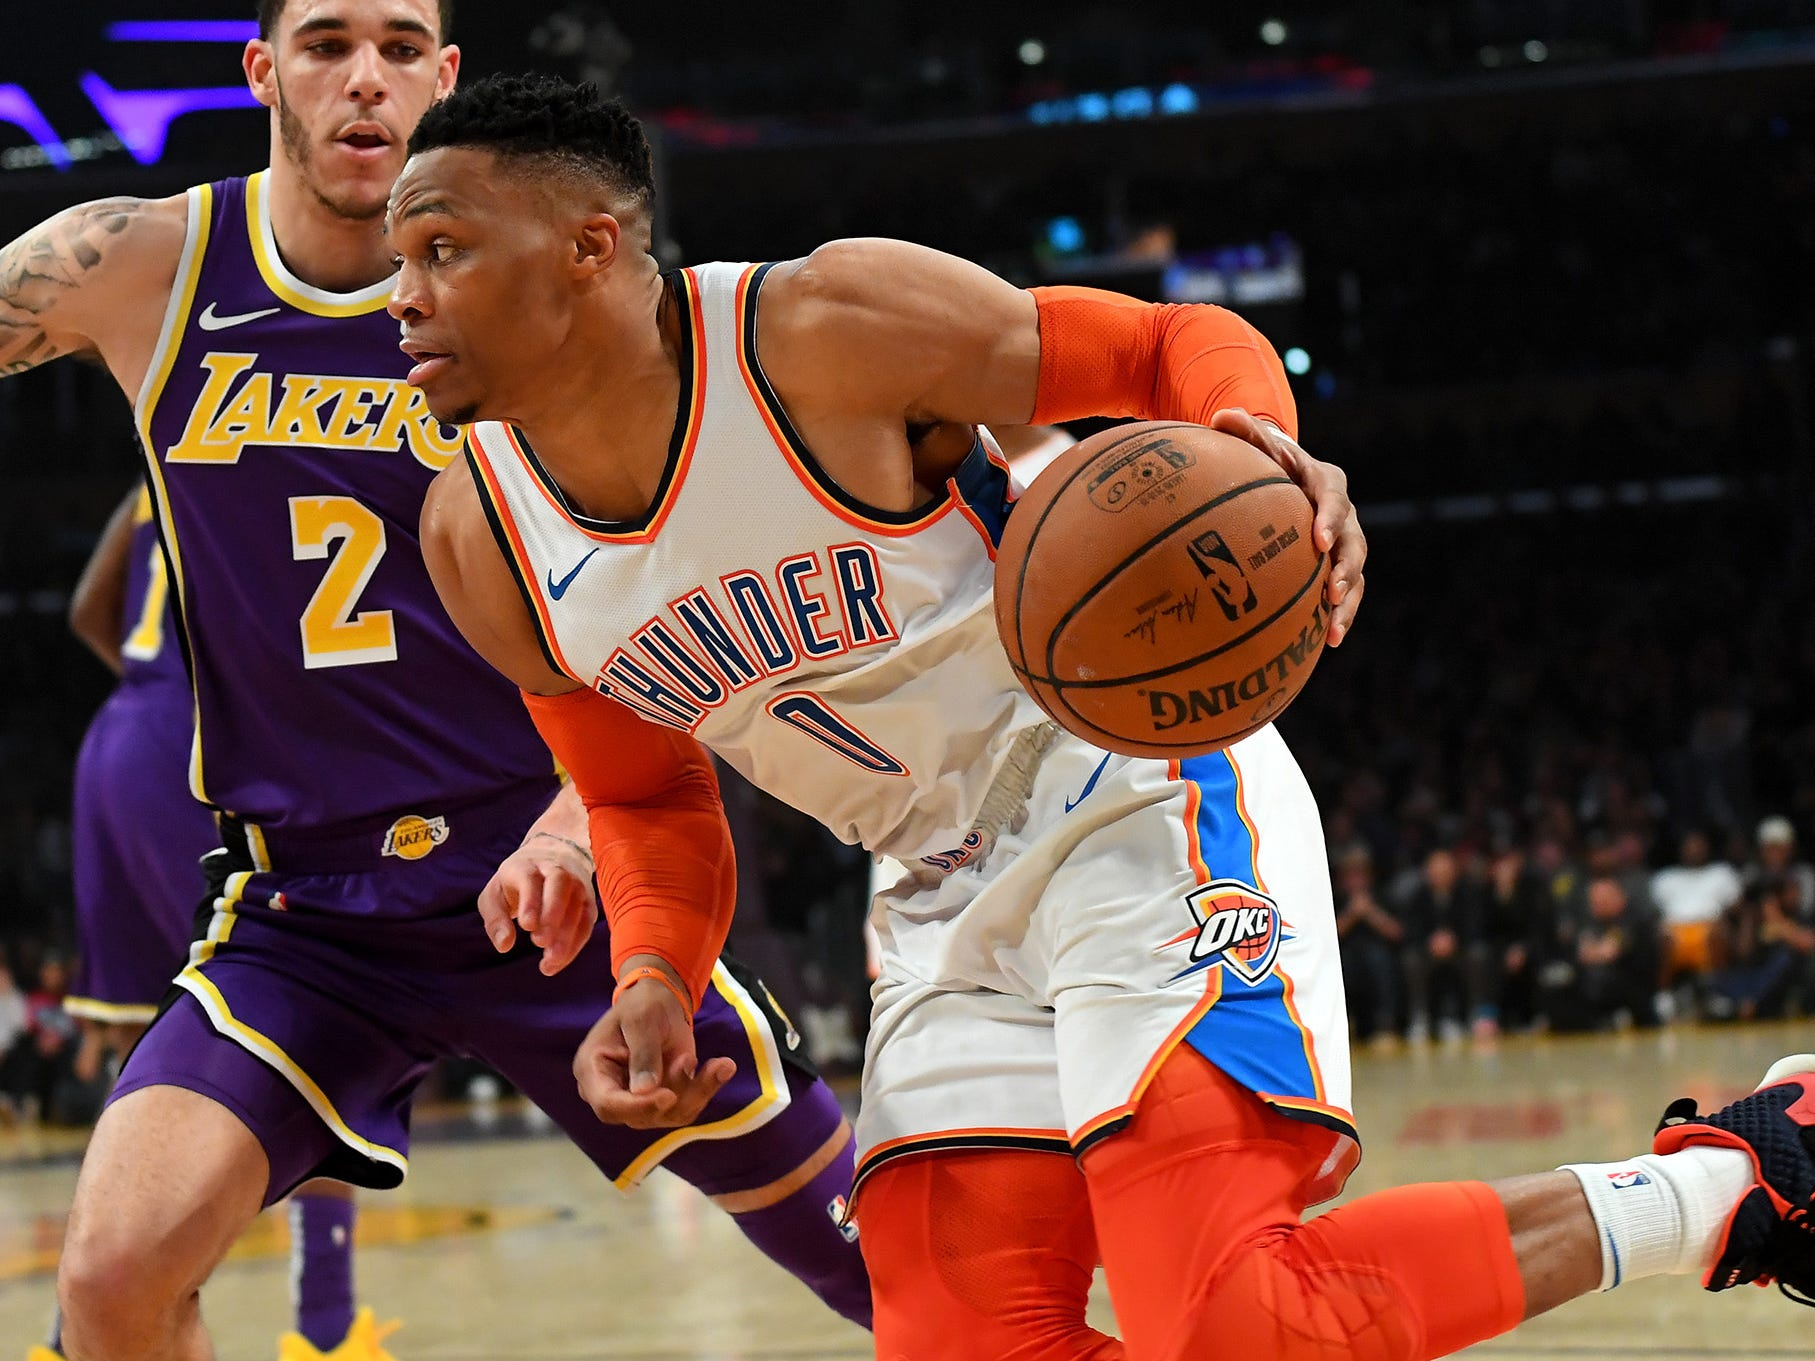 41. Russell Westbrook, Thunder (Jan. 2): 14 points, 16 rebounds, 10 assist in 107-100 win over Lakers (11th of season).